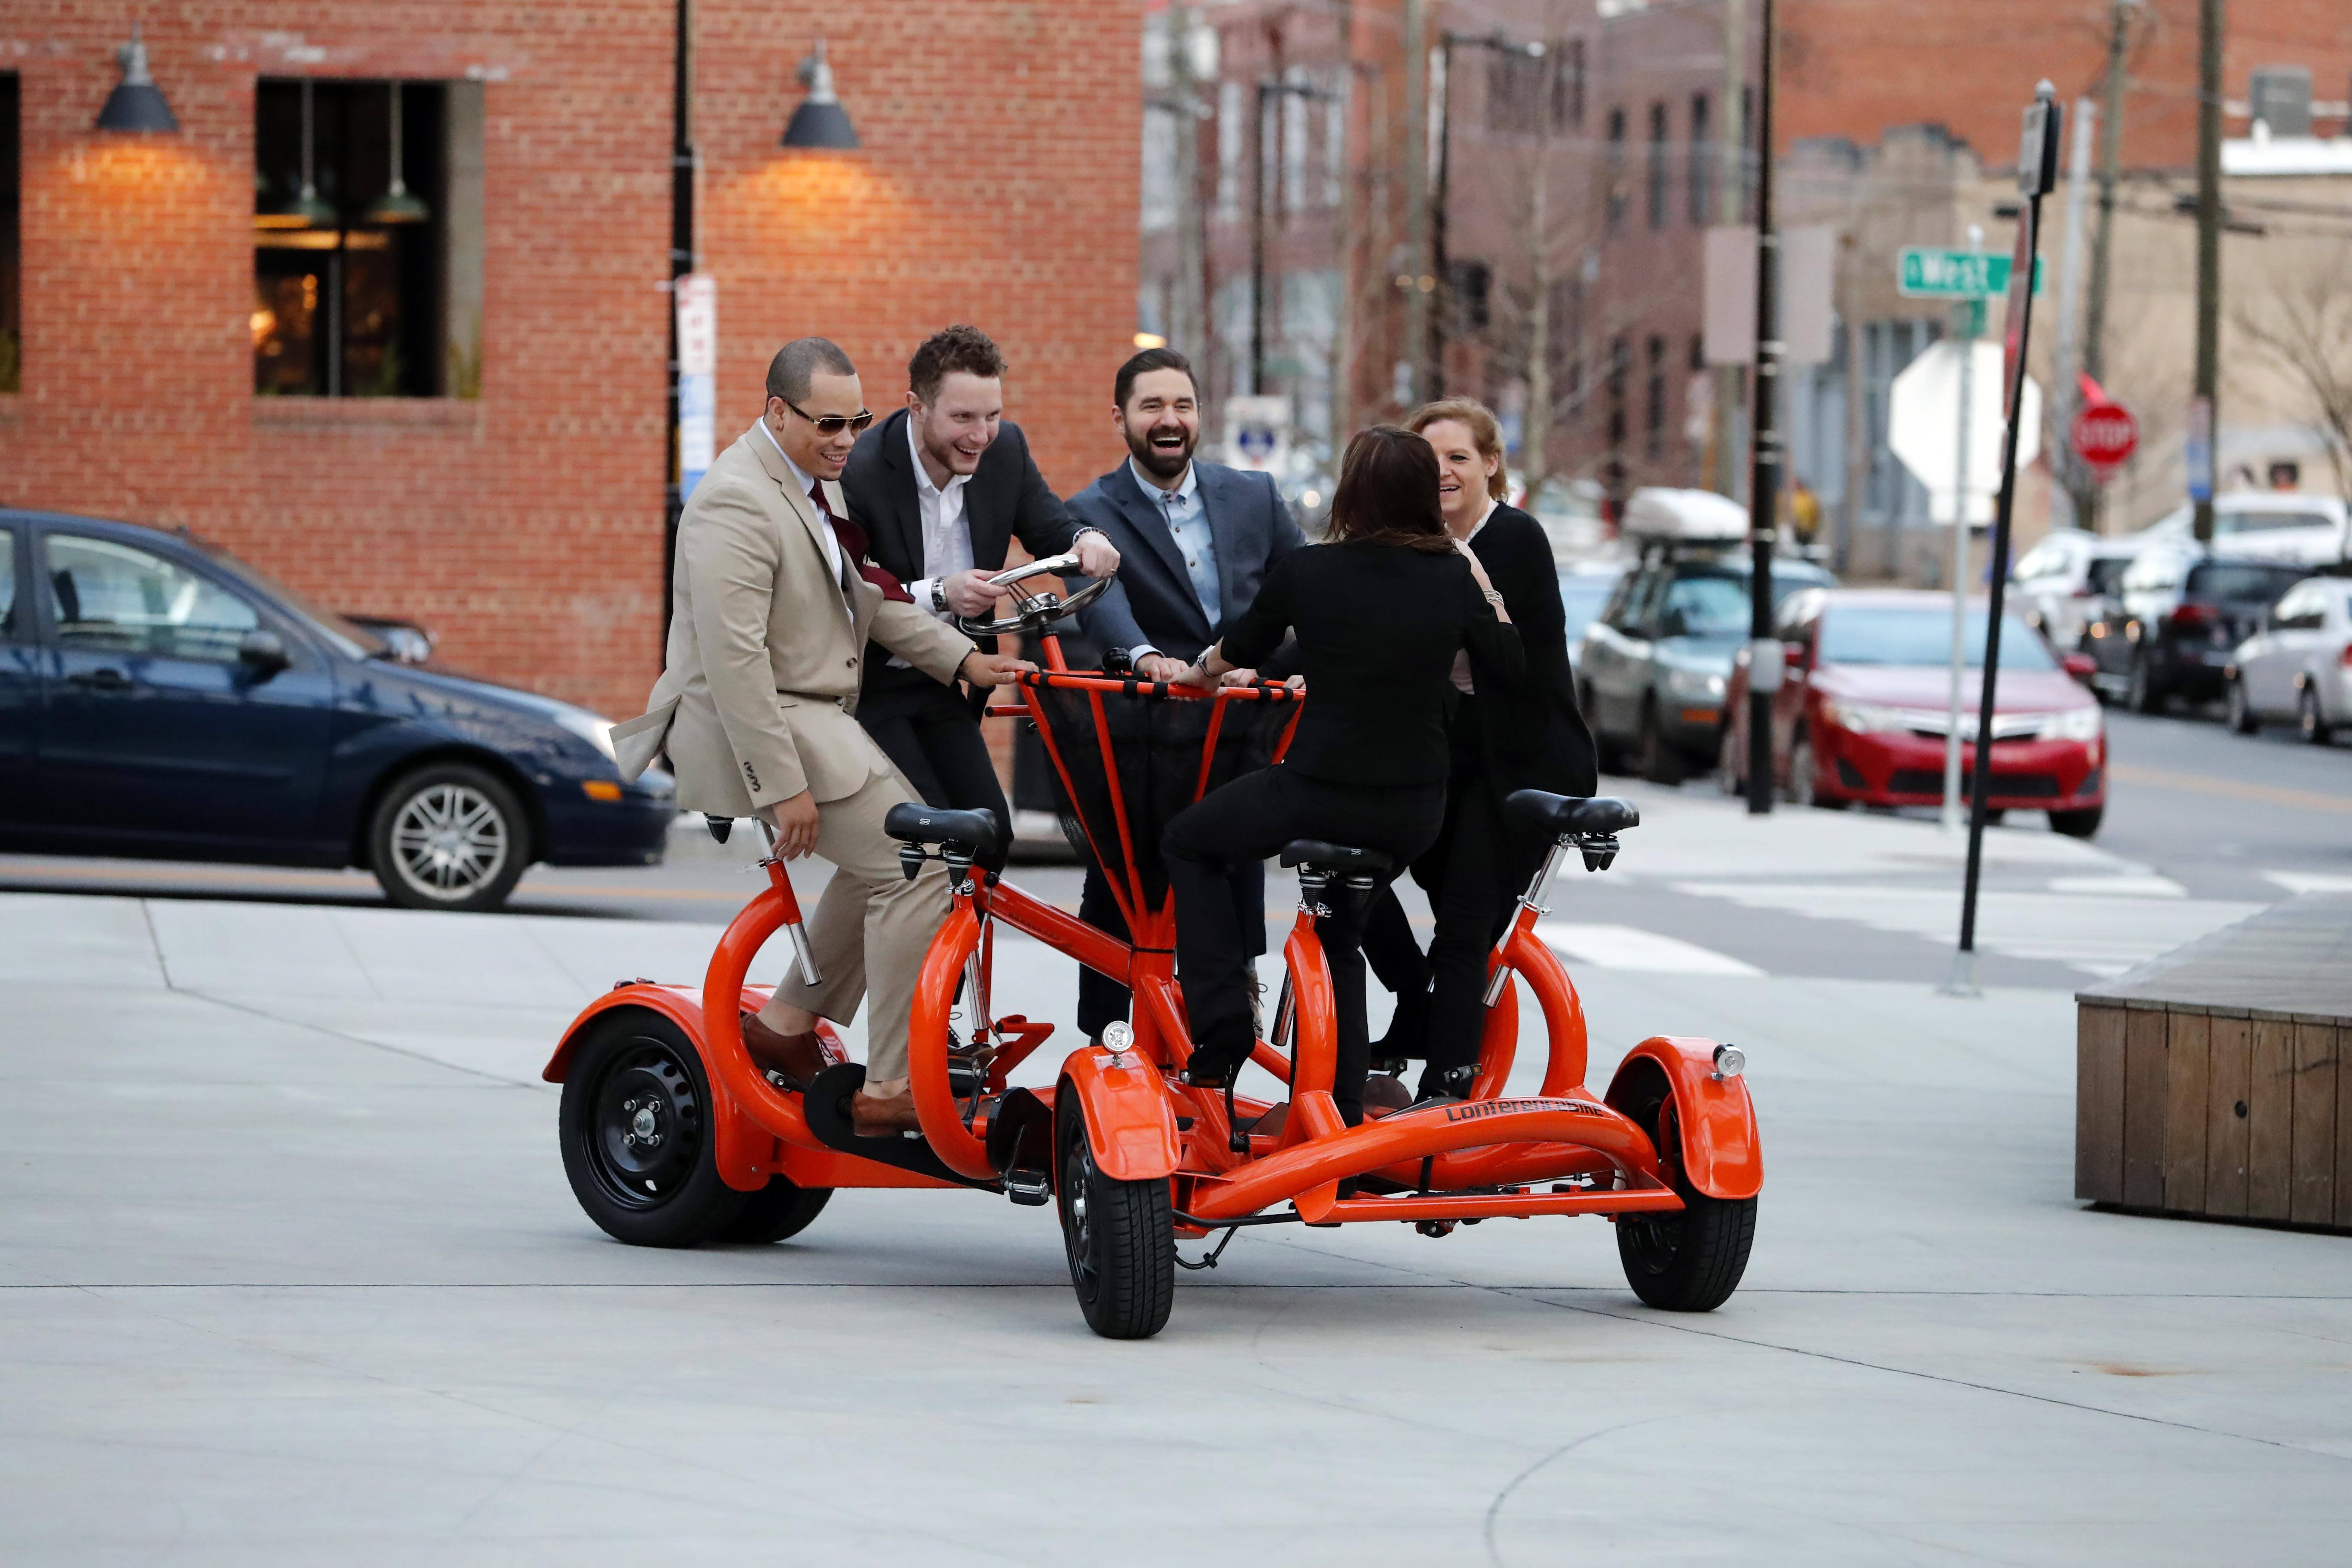 Photo of law students riding an orange conference bike